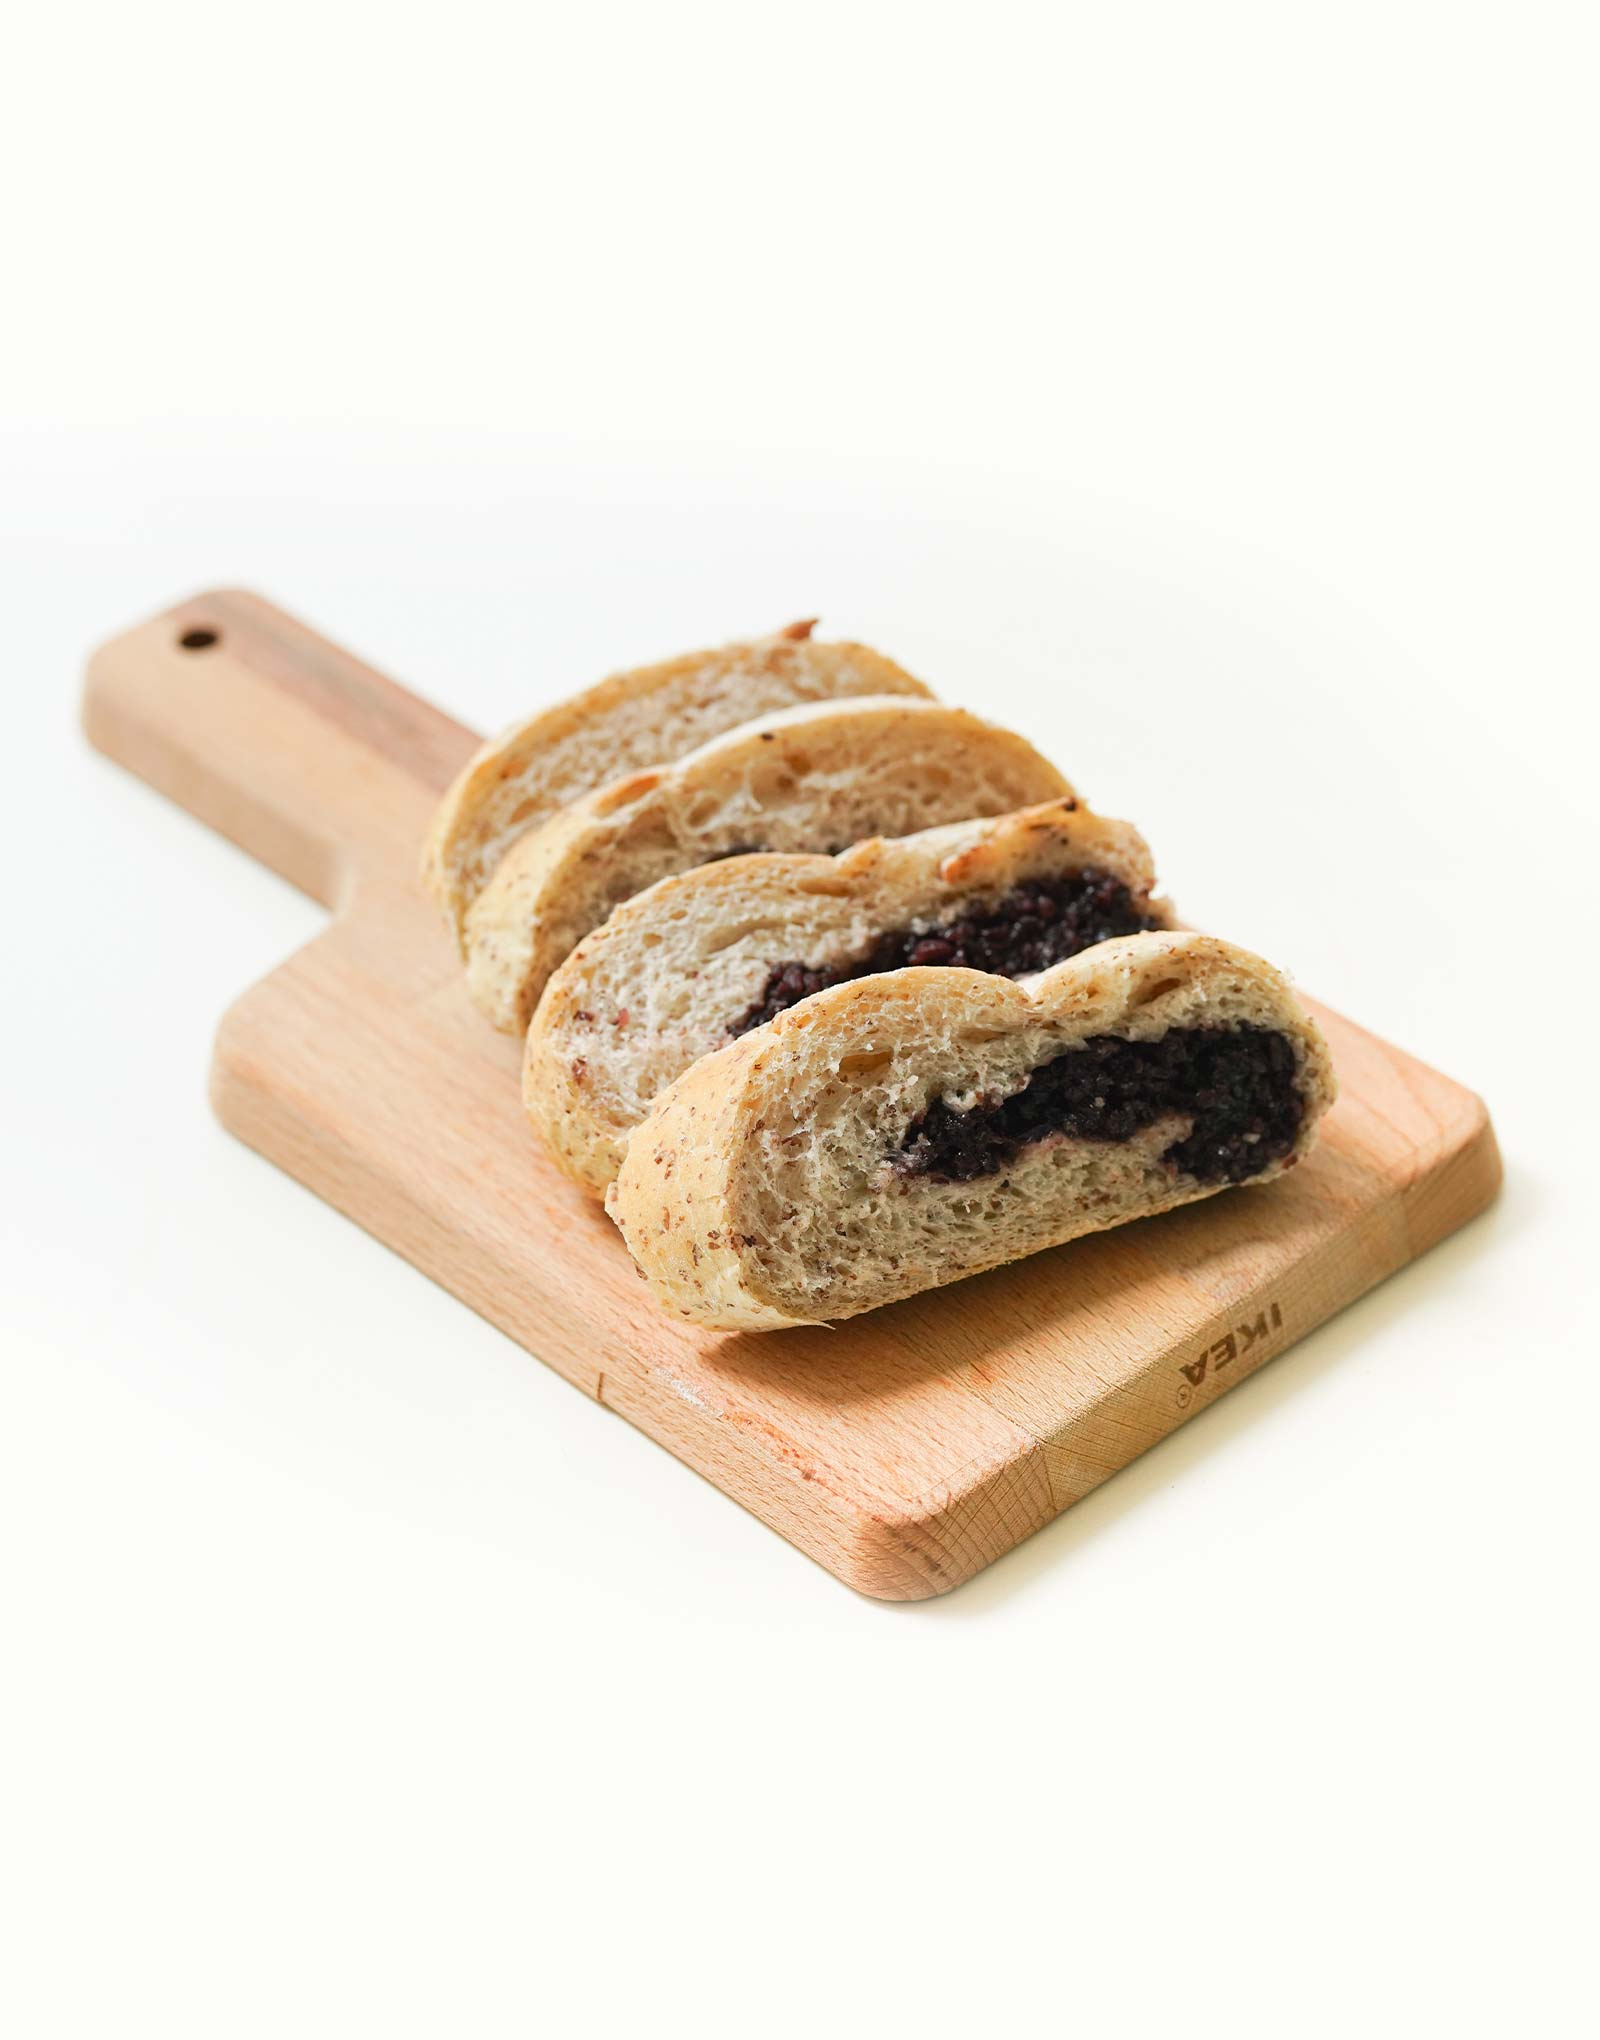 blackberry-stuffed-bread